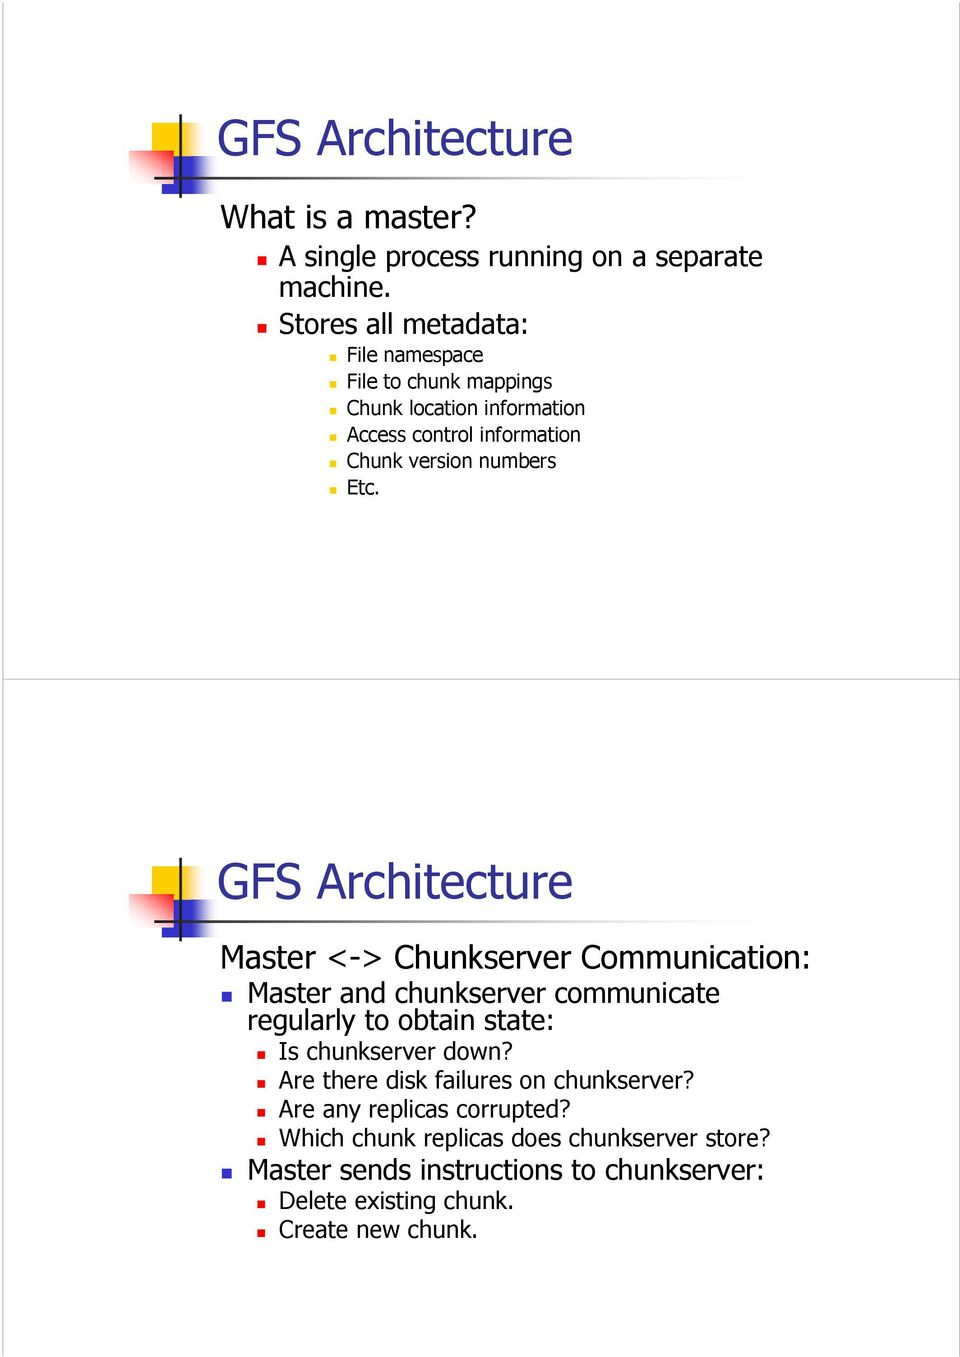 GFS Architecture Master <-> Chunkserver Communication: Master and chunkserver communicate regularly to obtain state: Is chunkserver down?